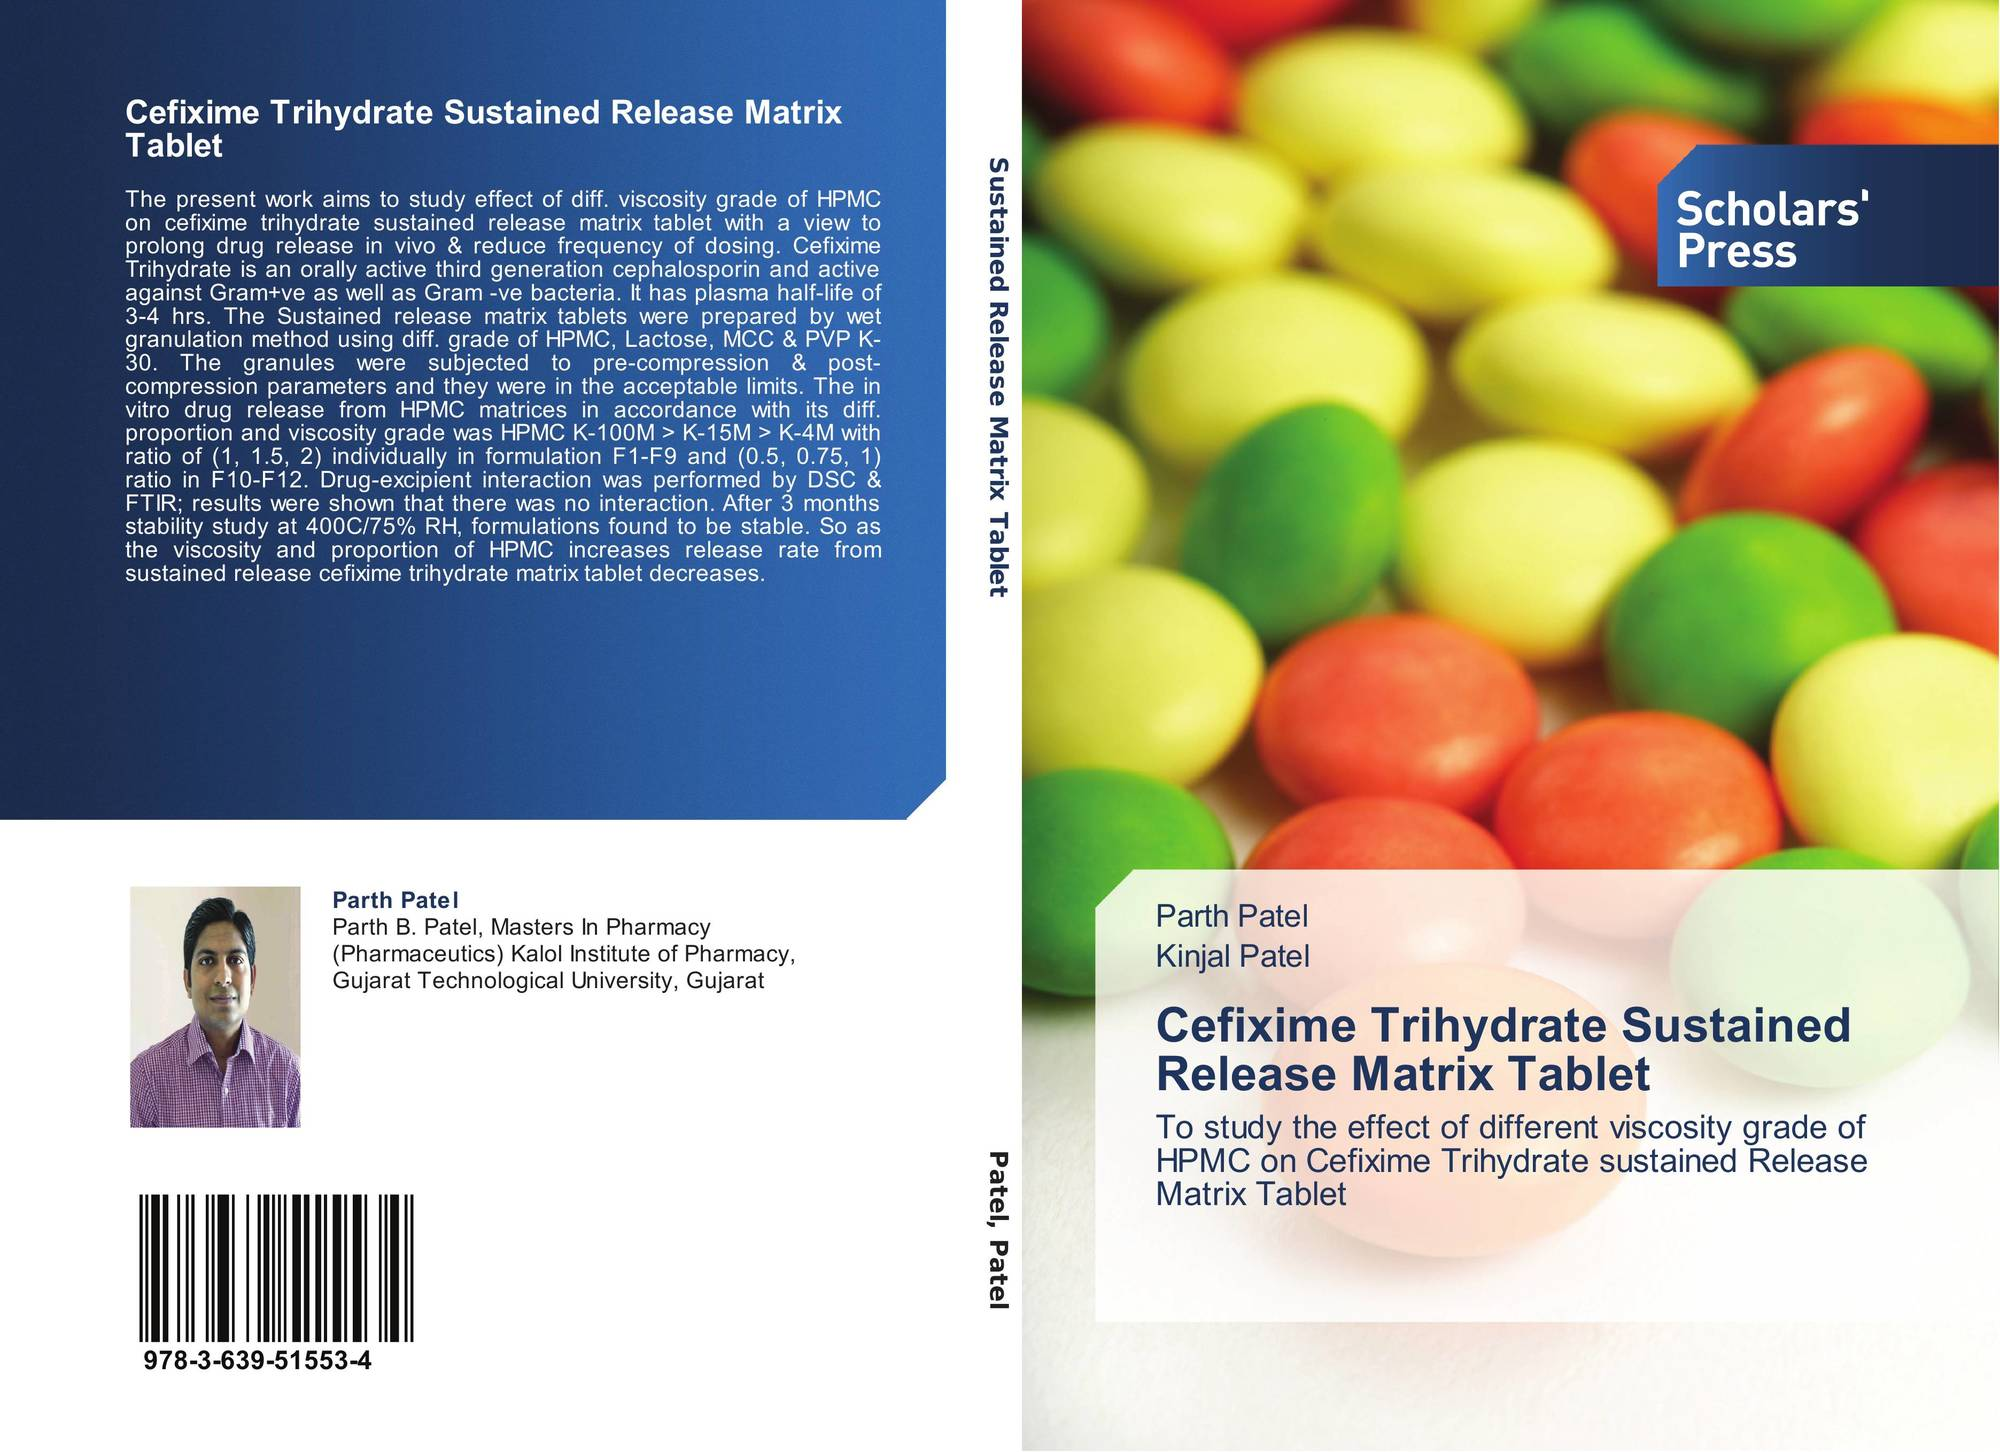 Cefixime Trihydrate Sustained Release Matrix Tablet, 978-3